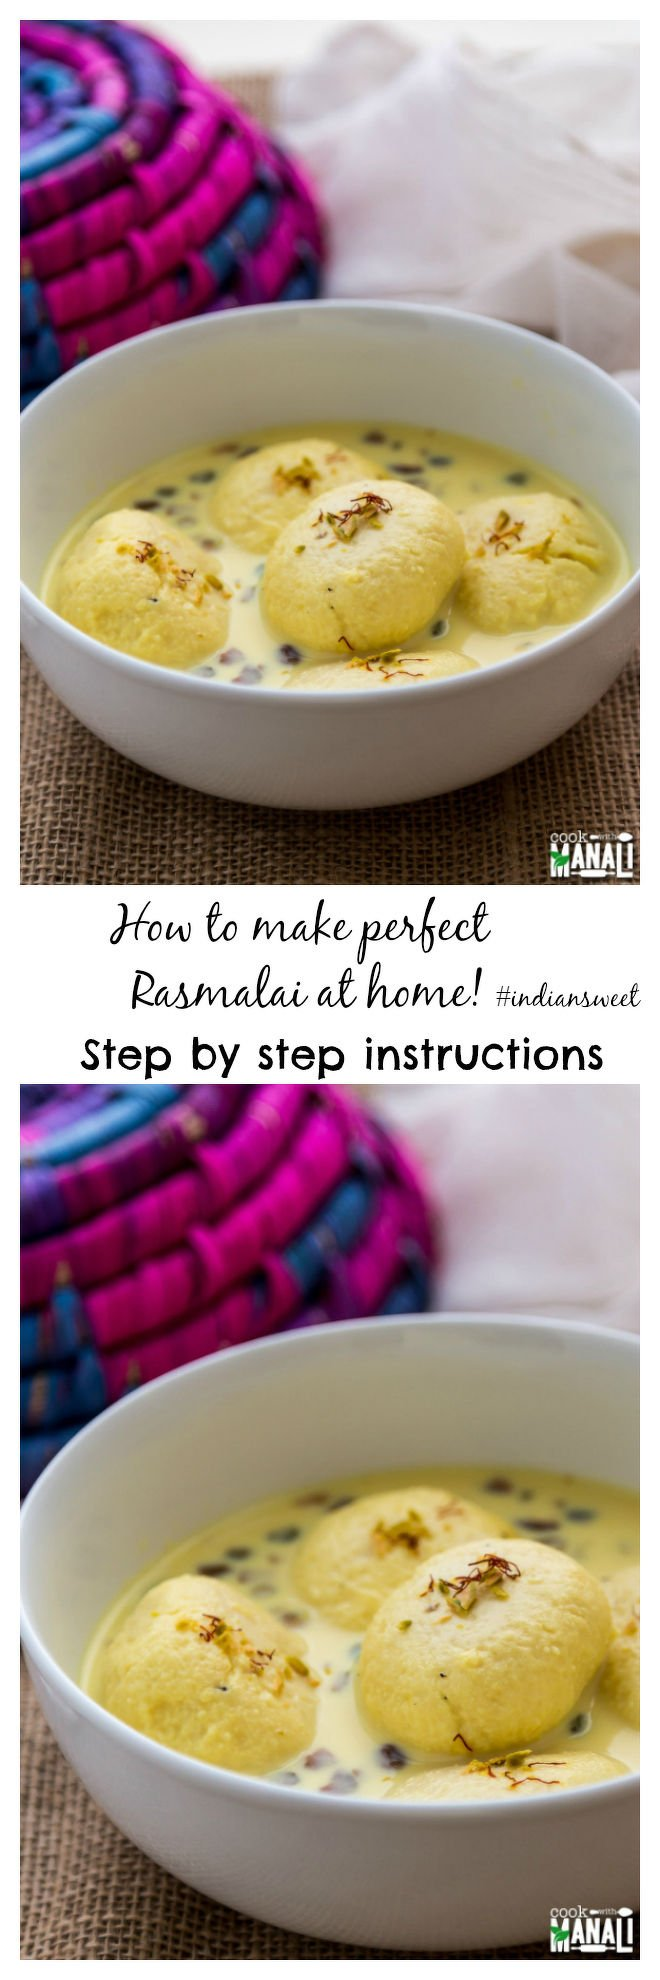 How-To-Make-Rasmalai-Collage-nocwm